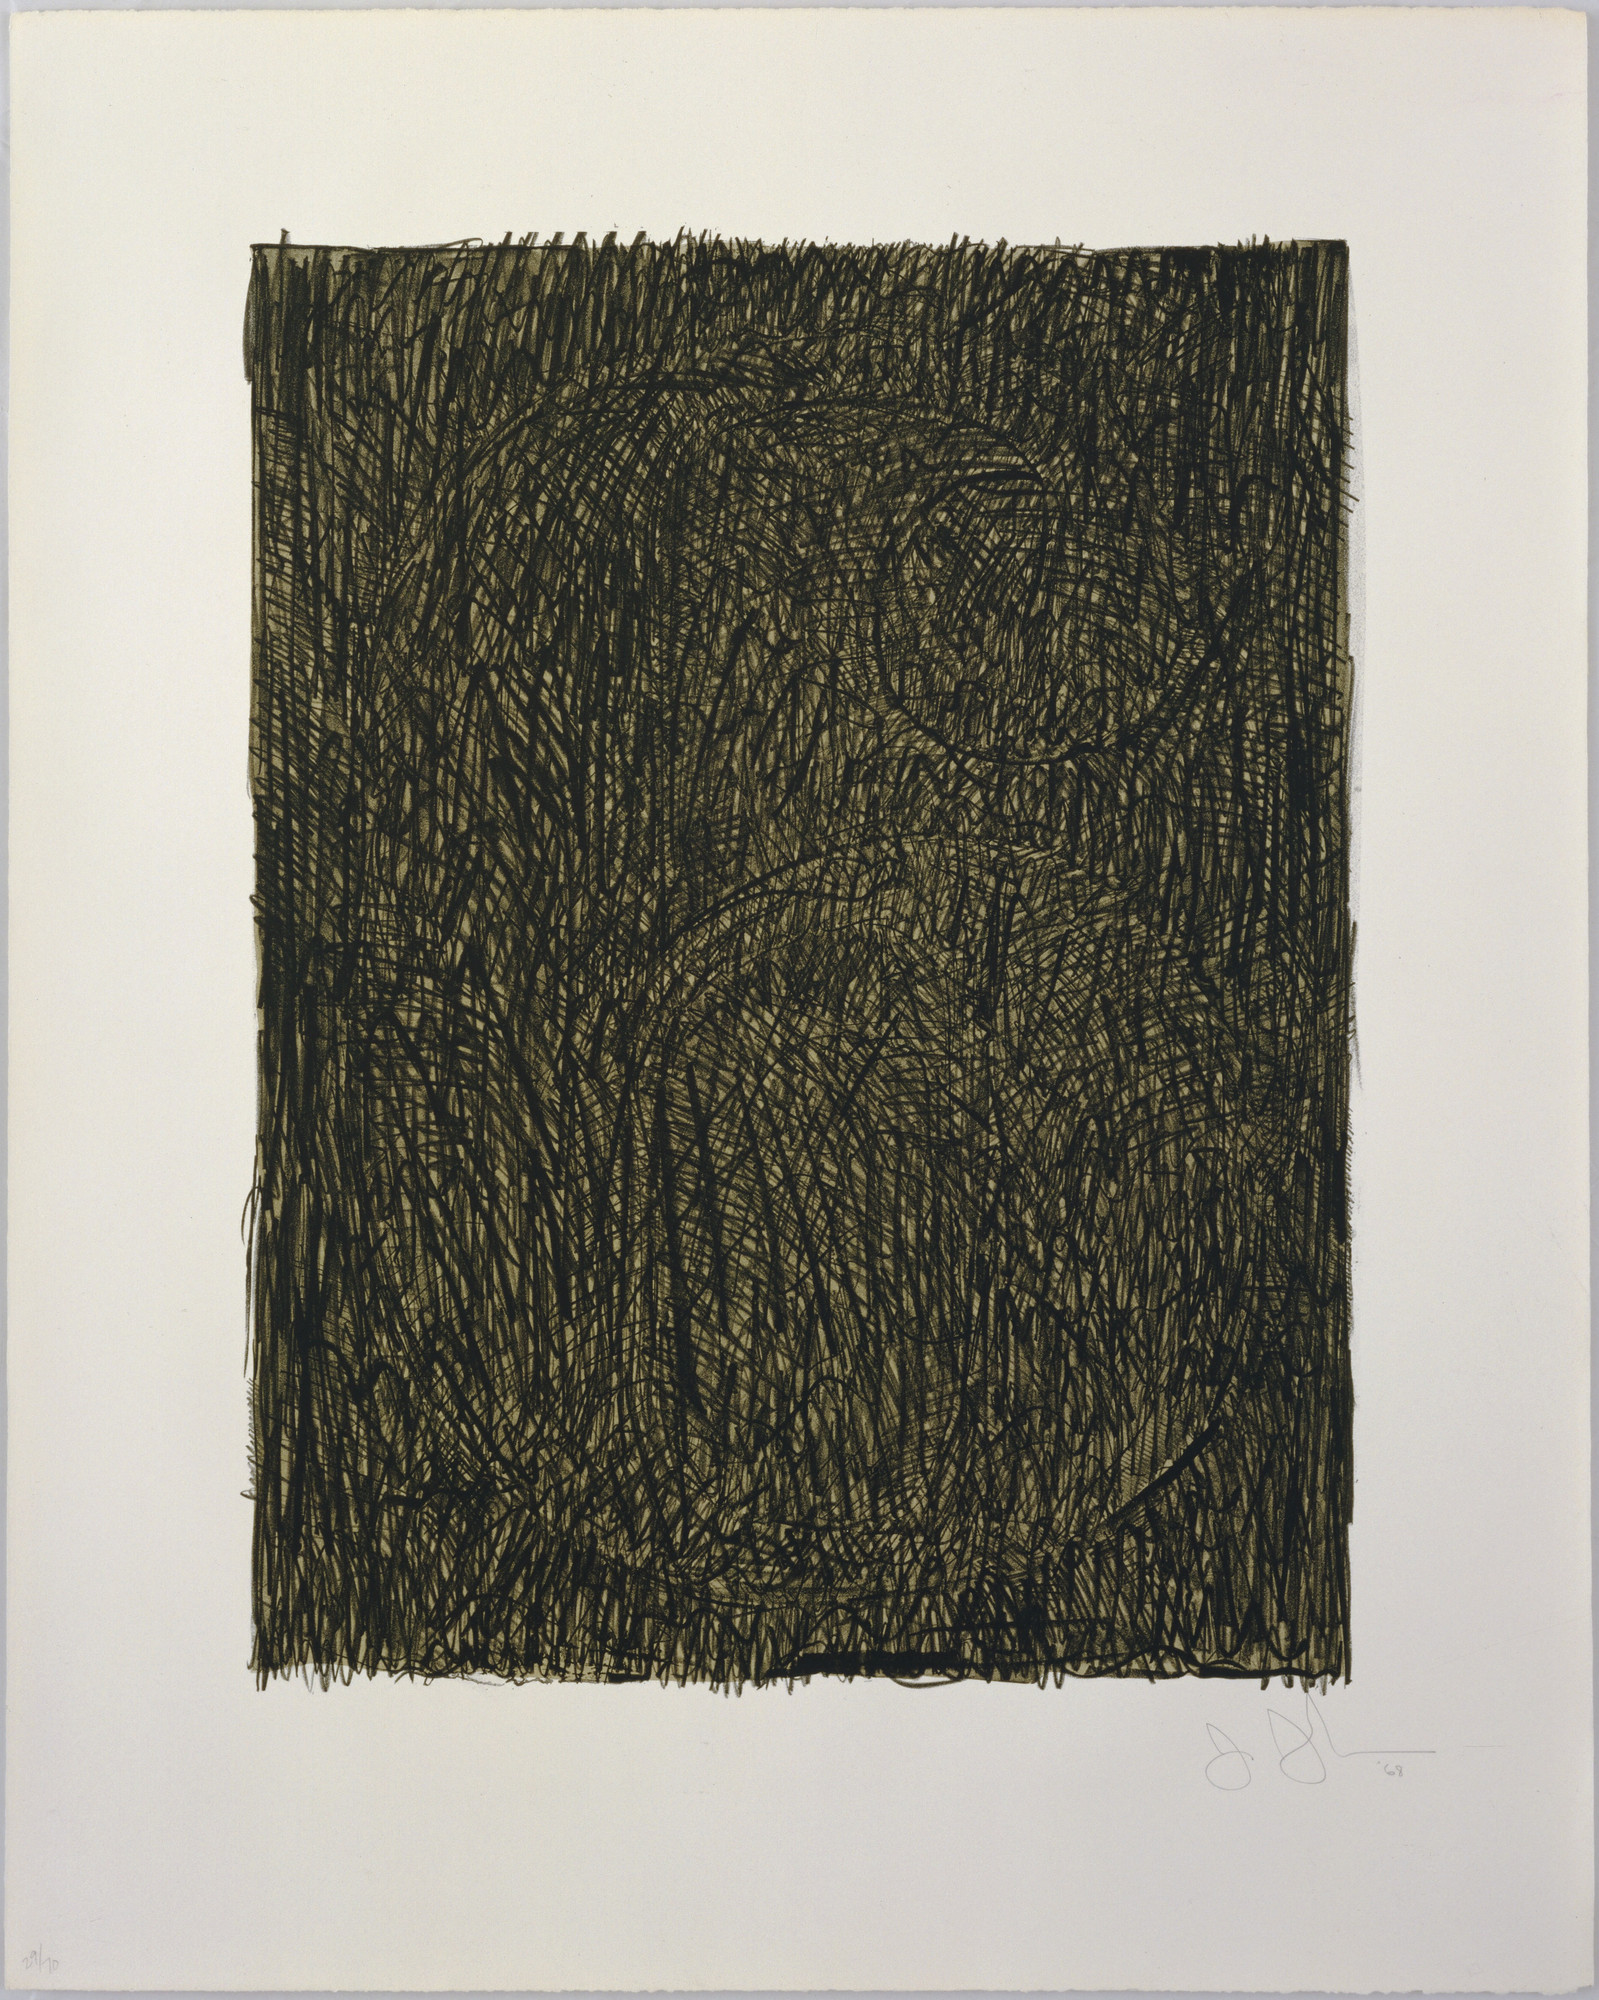 Jasper Johns. Figure 6 from Black Numeral Series. 1968